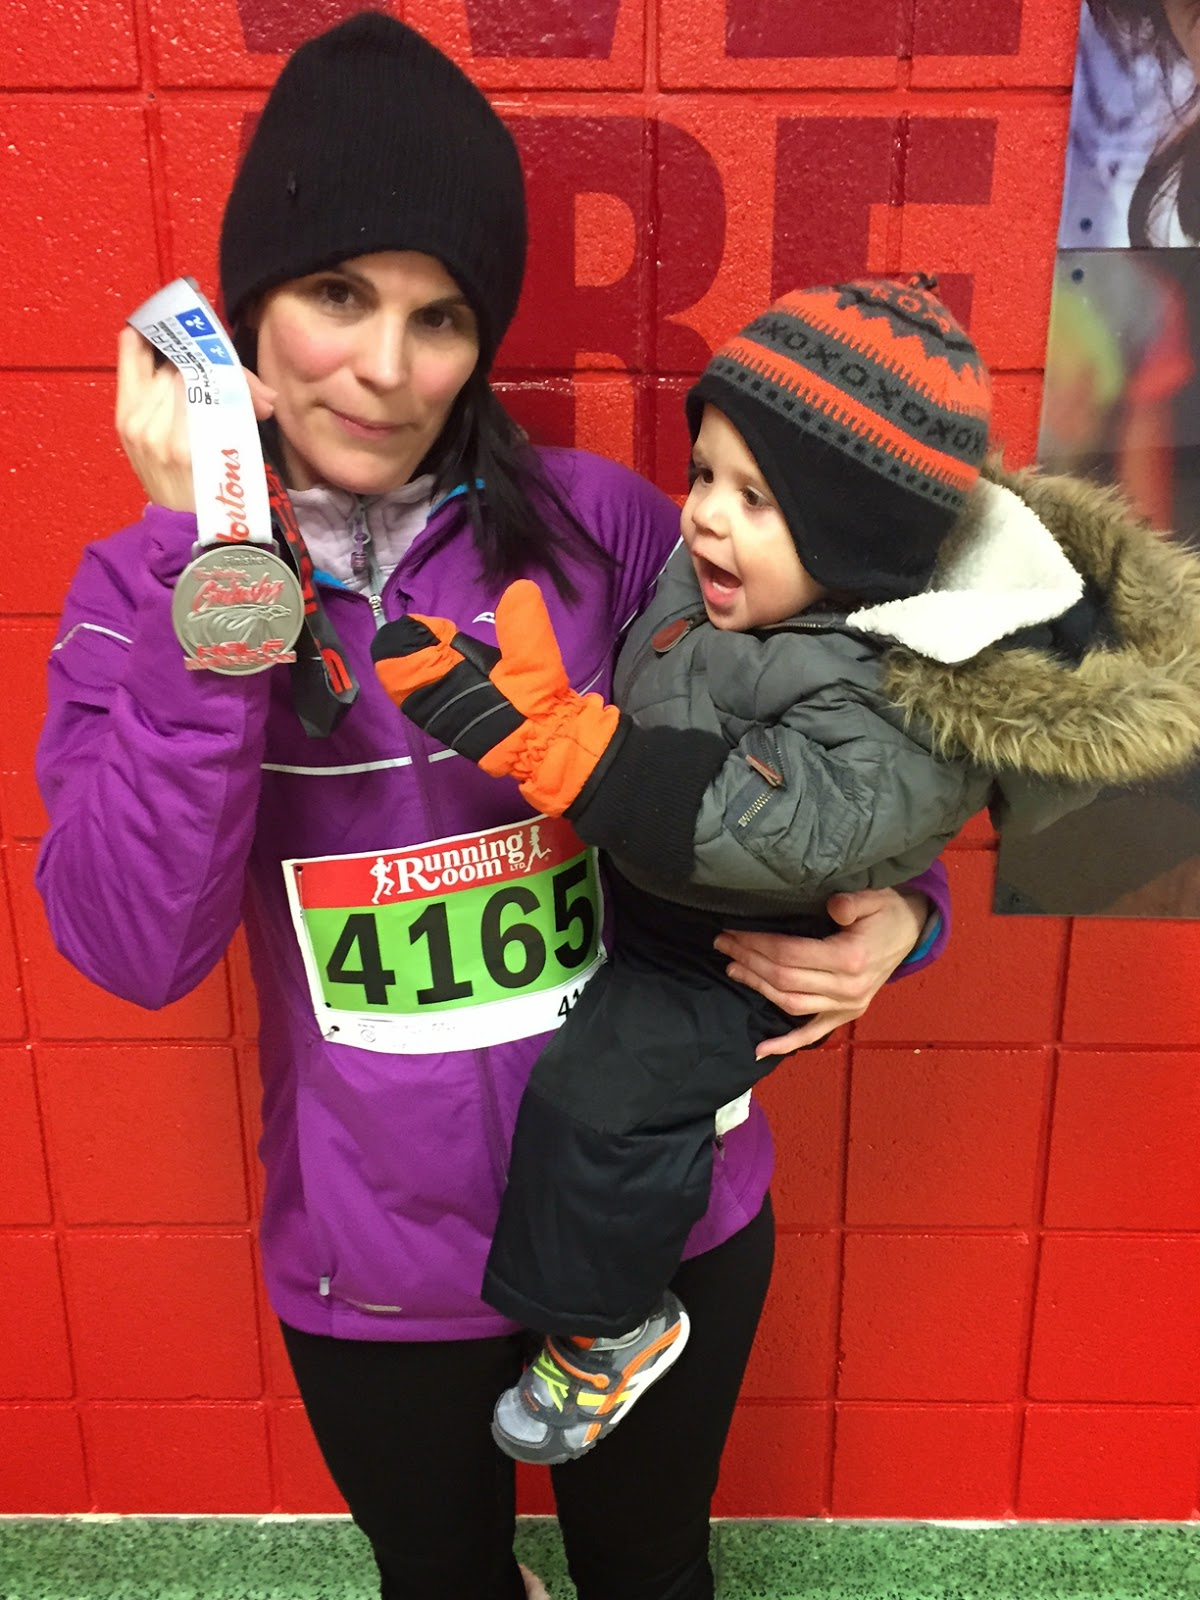 image of Lucie on Race day showing off her finisher medal